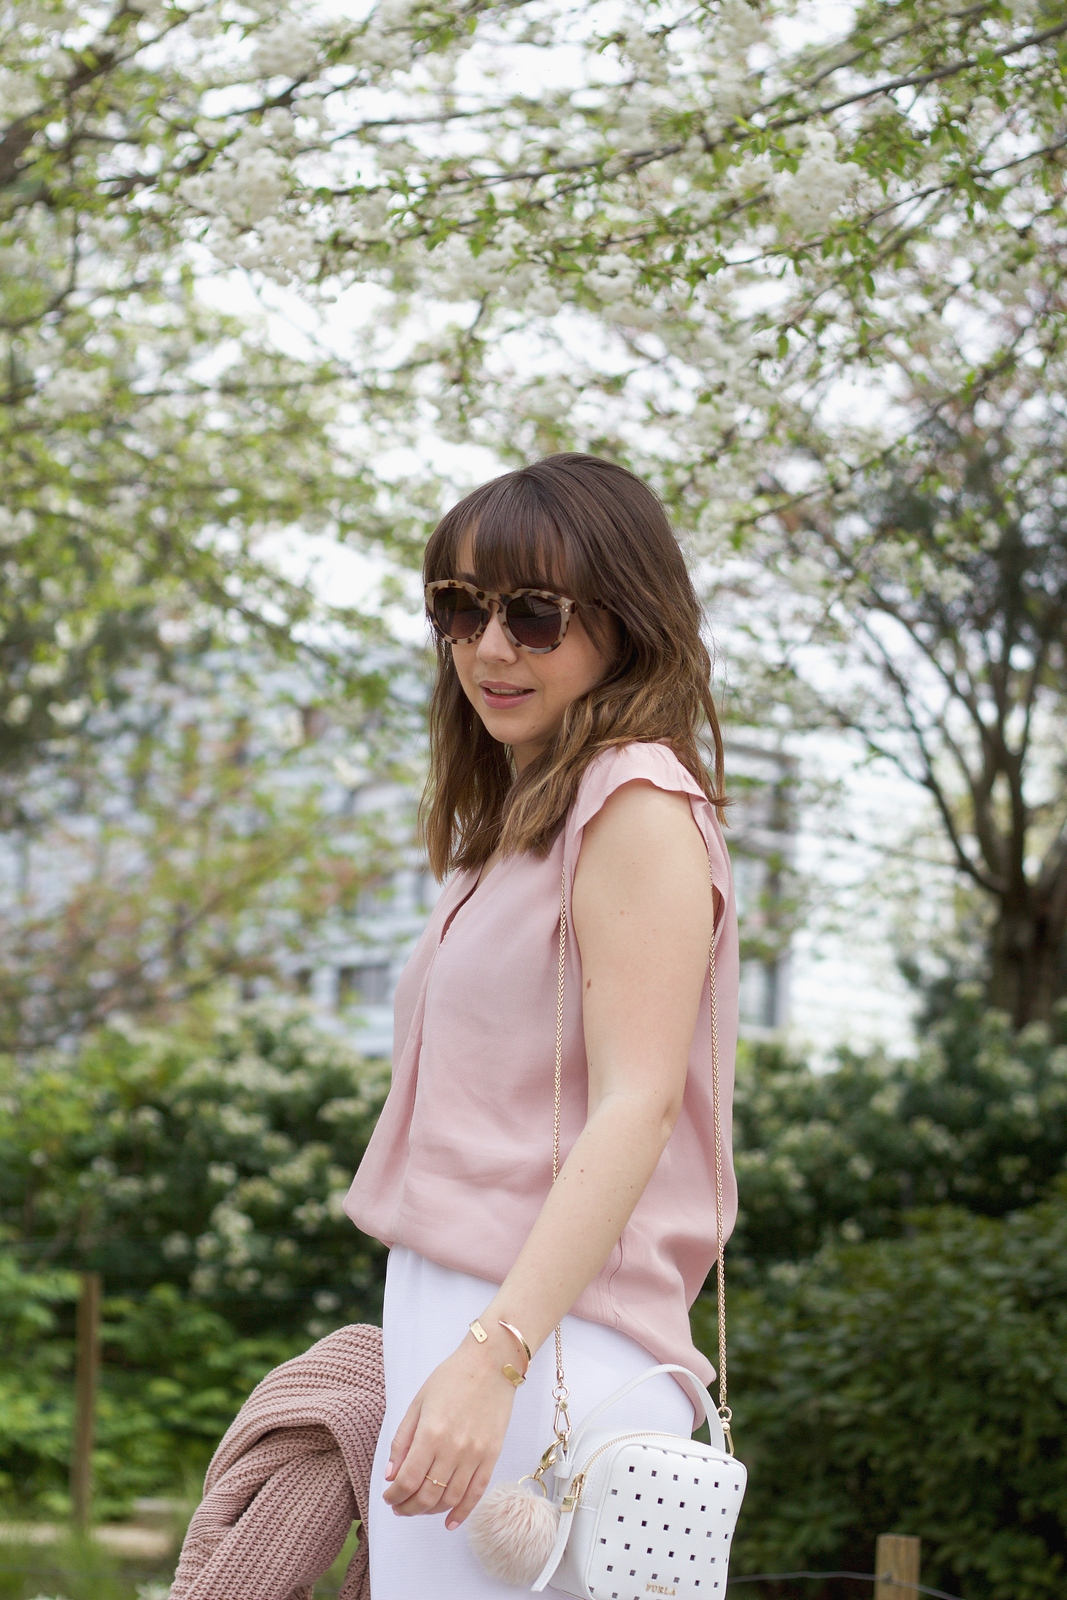 Blog mode femme Paris - Du style, Madame - Streetstyle - white pant